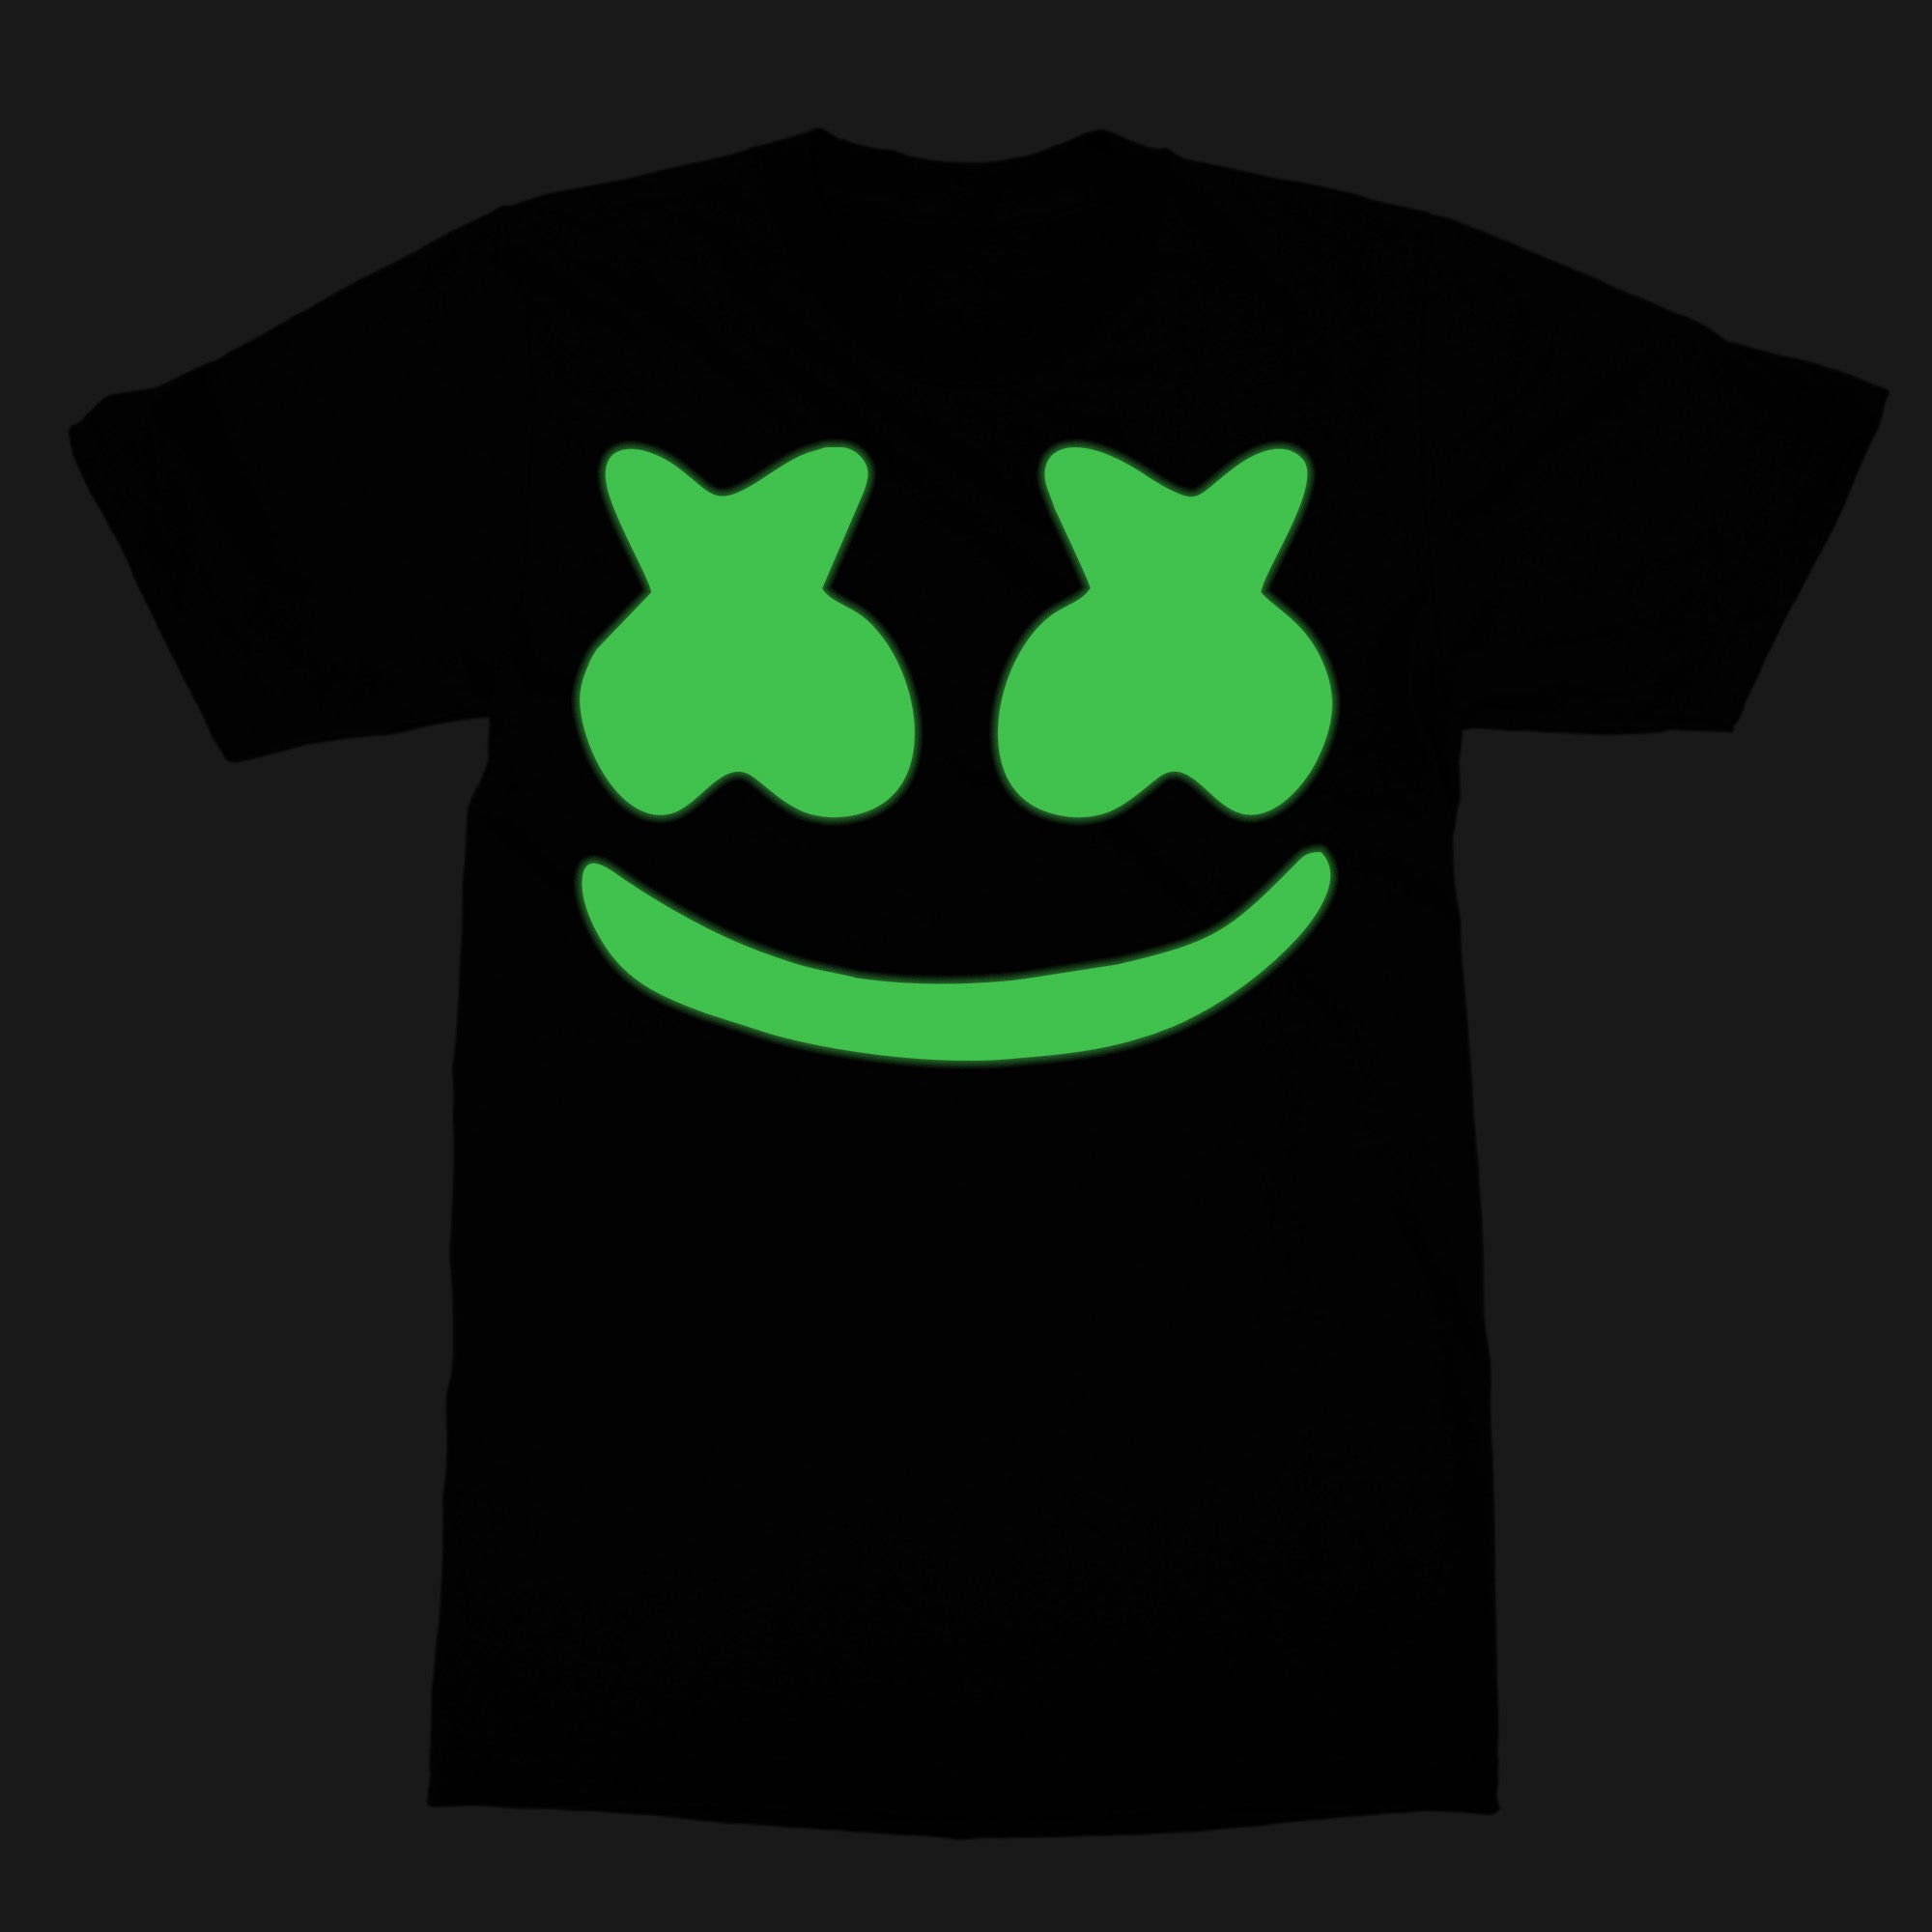 Marshmello Glow In The Dark Tshirt In India By Sillypunter Silly